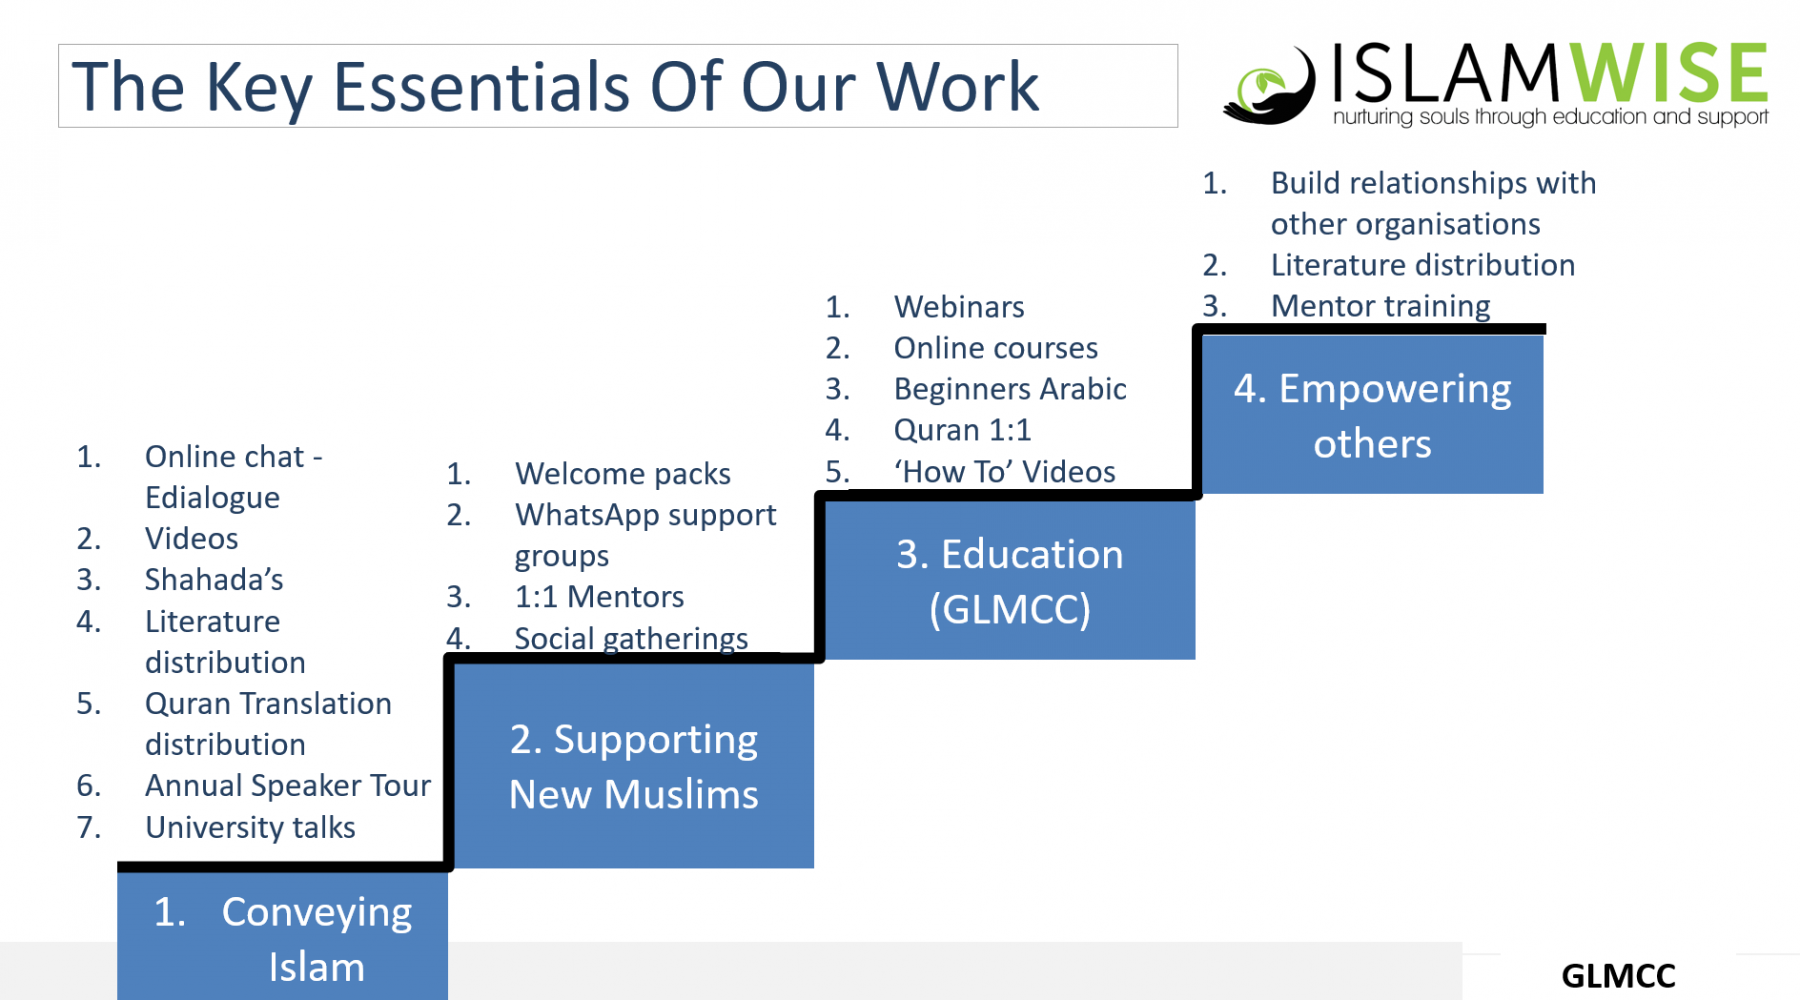 Essentials of our work